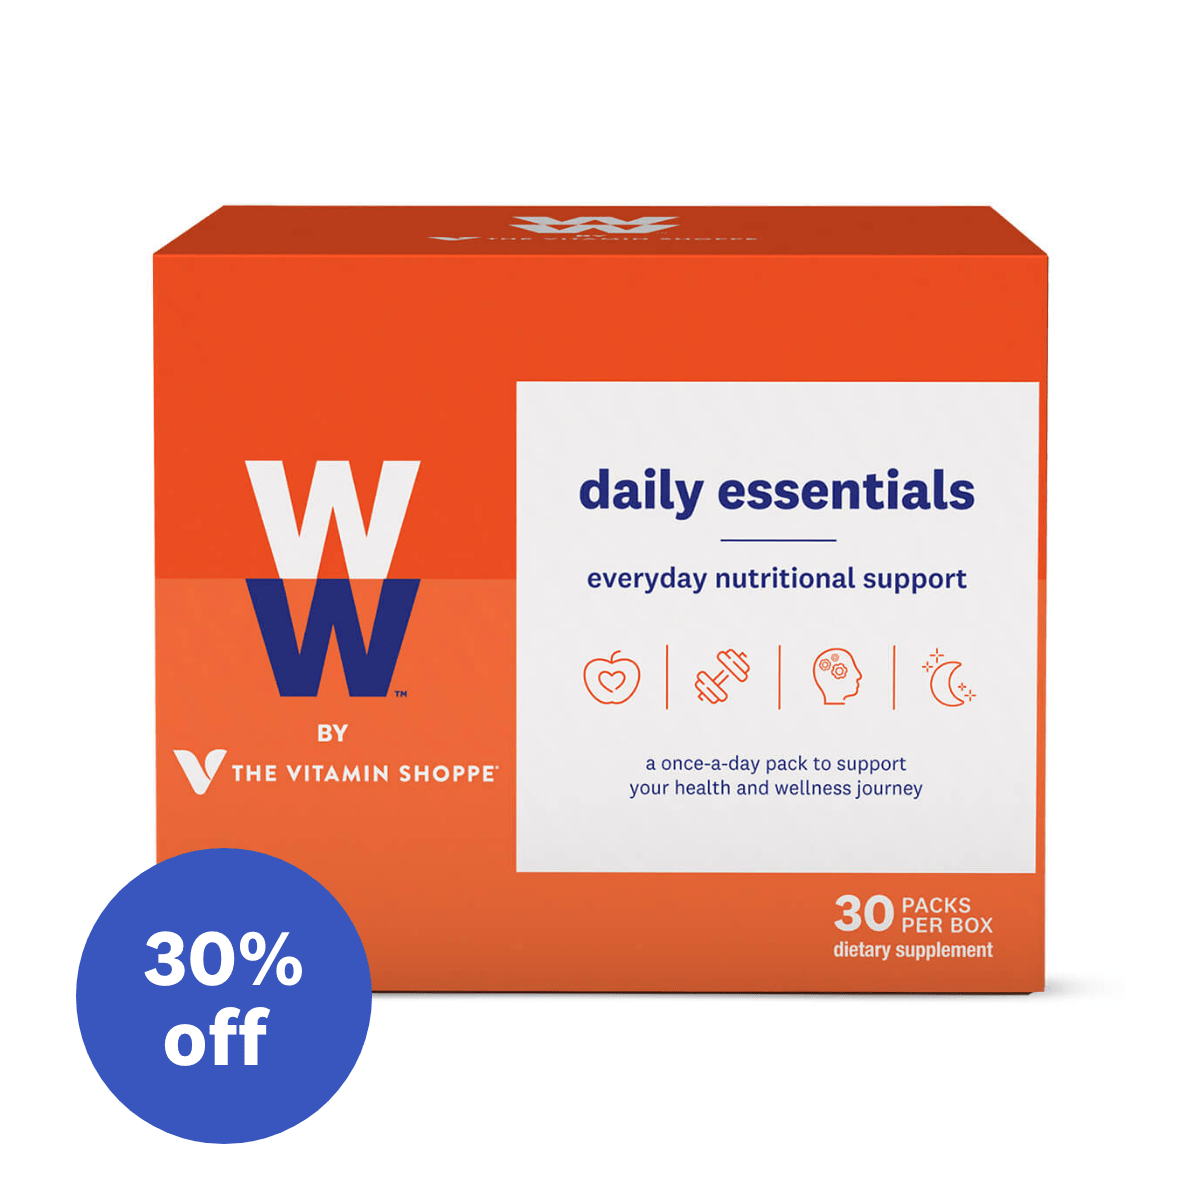 WW by the Vitamin Shoppe Daily Essentials - sale image